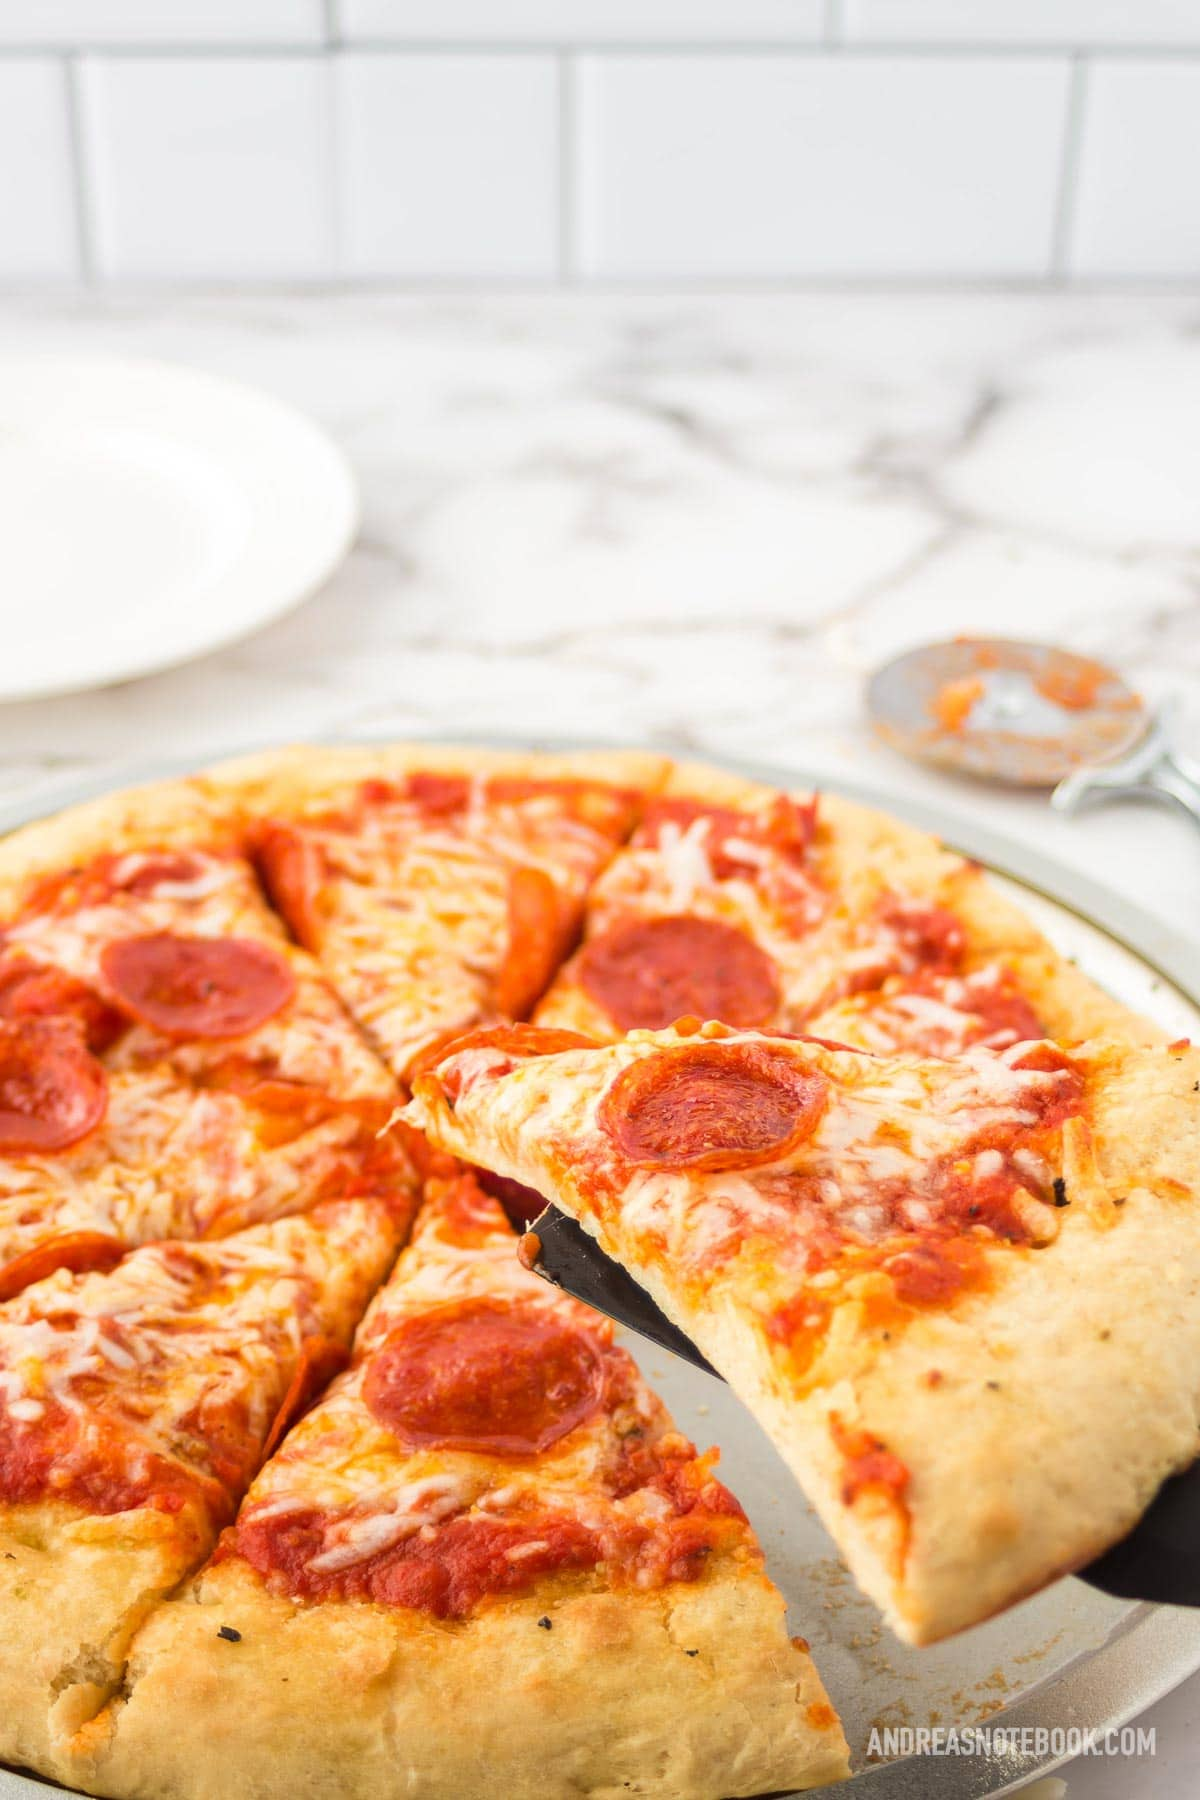 whole pepperoni pizza on white marble counter with subway tile background